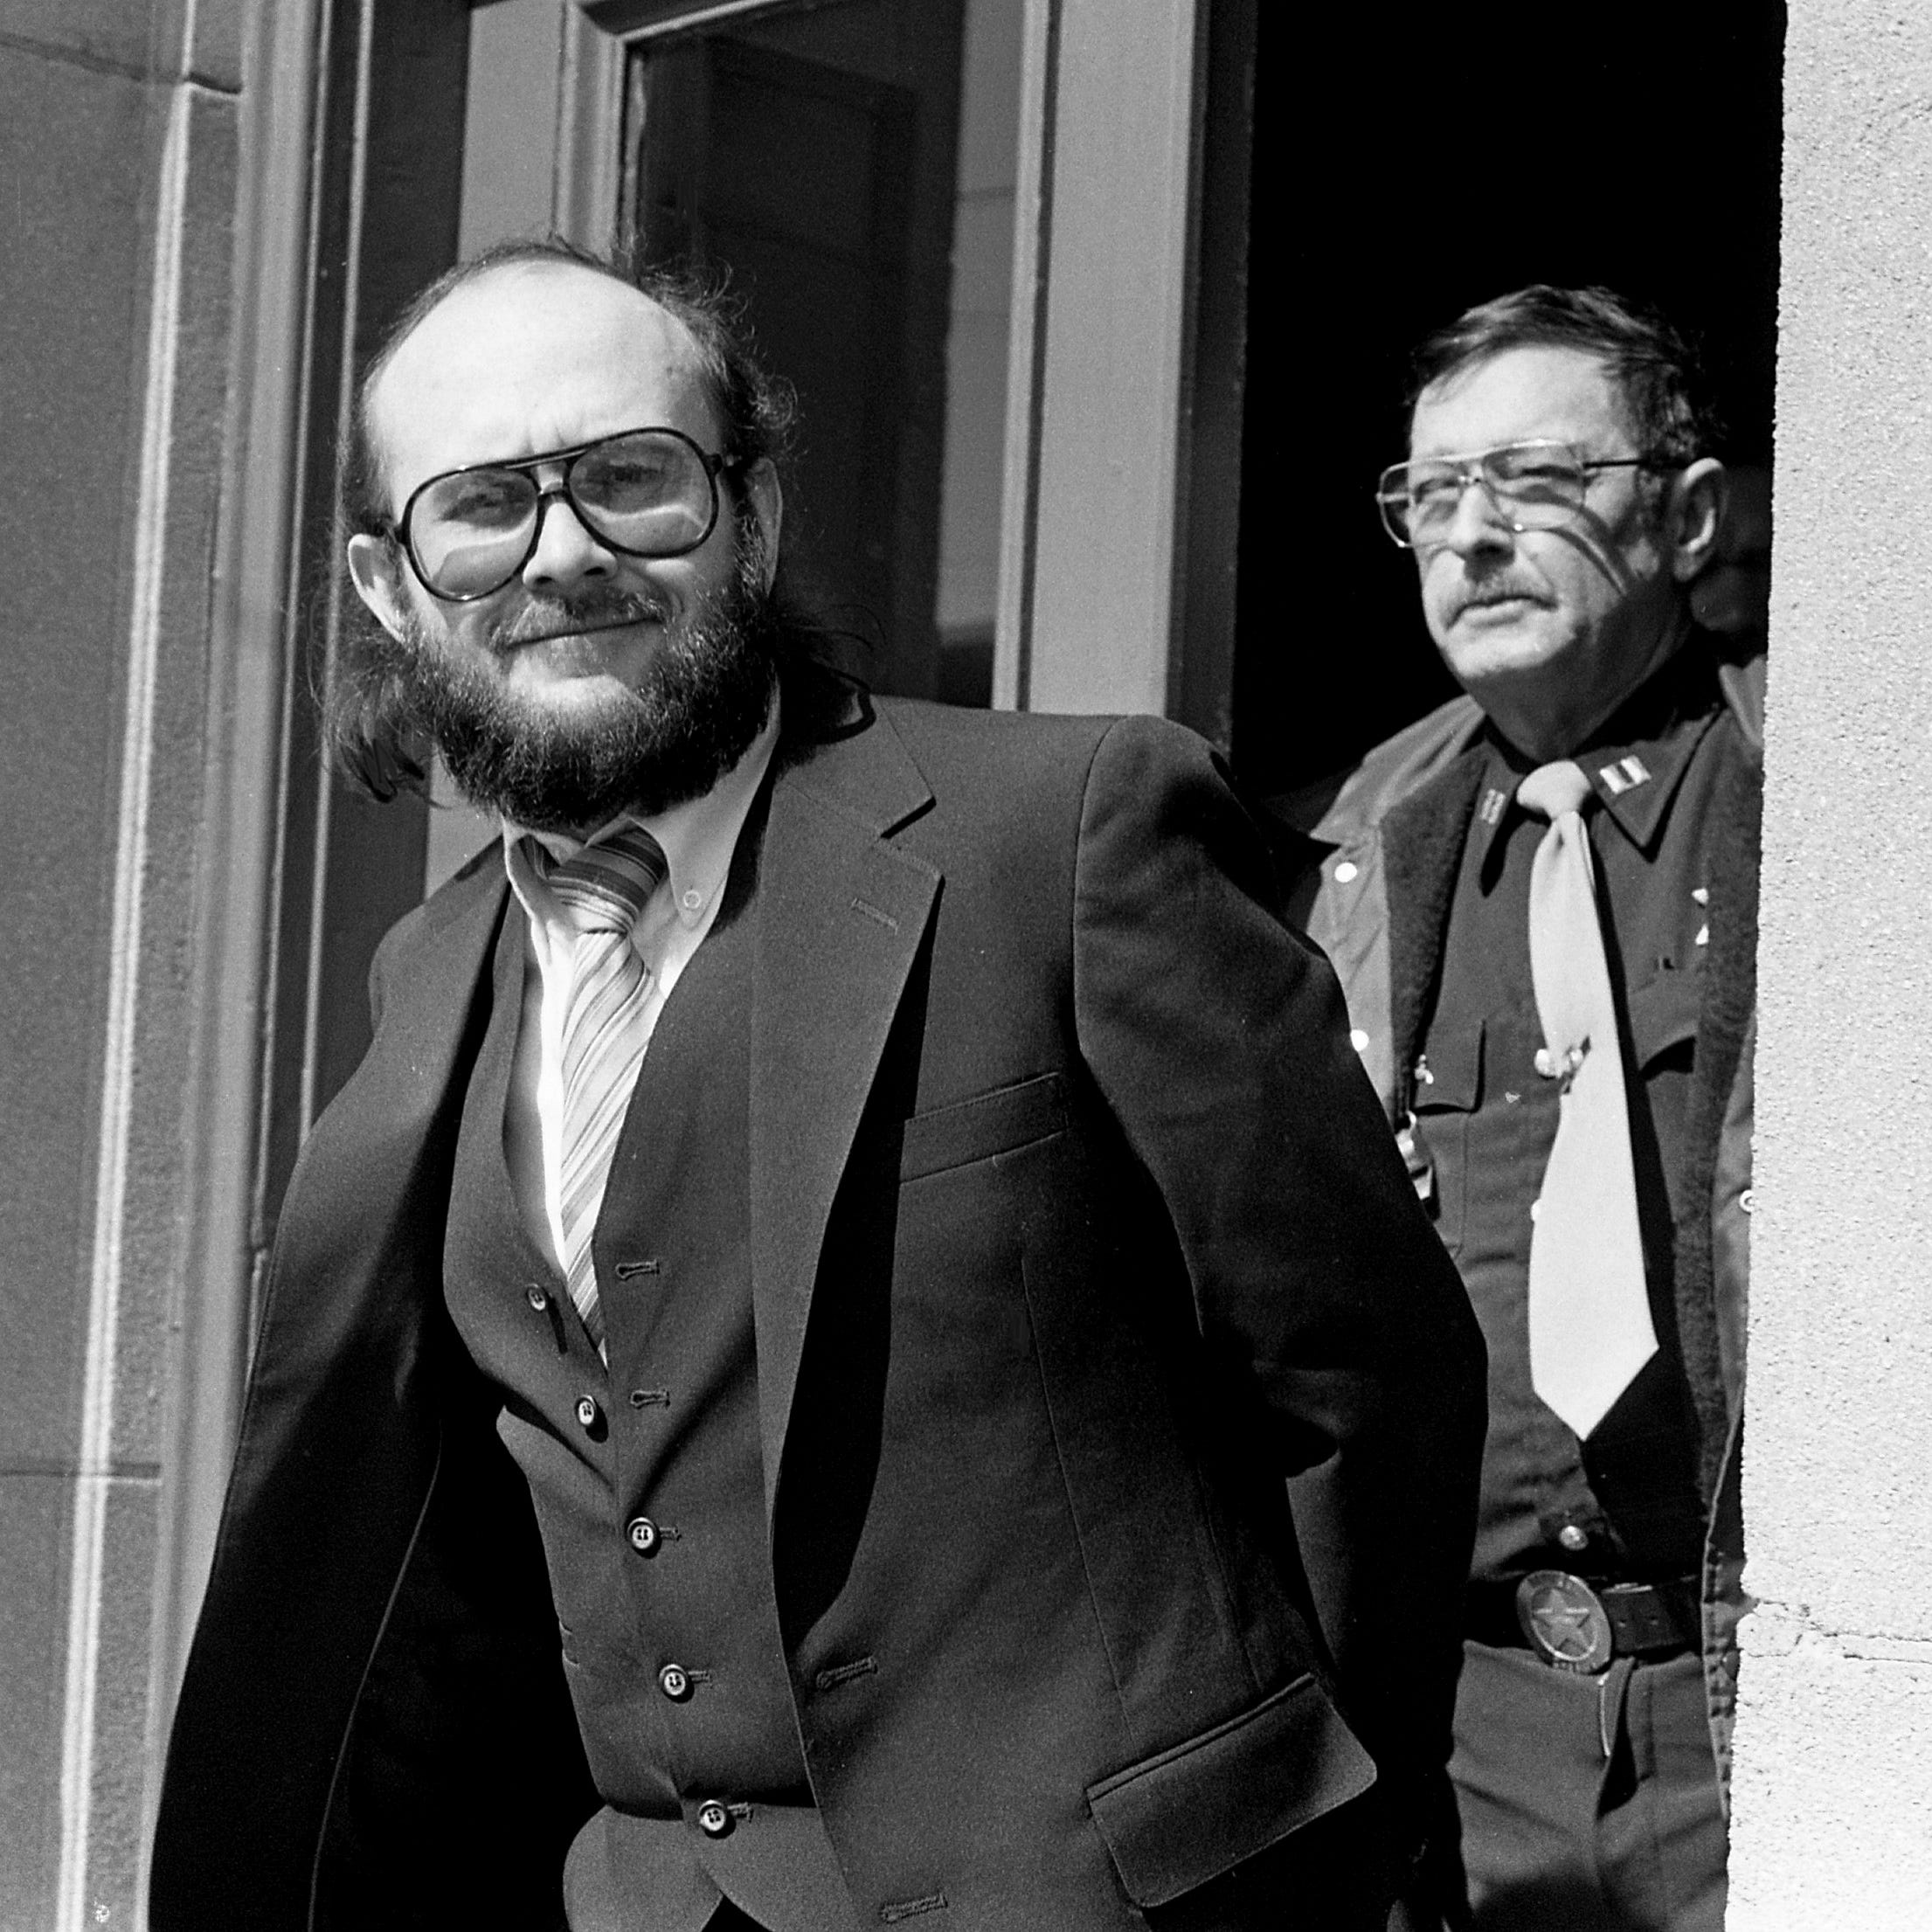 Edmund Zagorski leaves the Robertson County Courthouse in Springfield on Feb. 29, 1984, as his trial on two counts of first-degree murder comes to an end for the day. Zagorski is accused of killing John Dale Dodson, 28, a Hickman County logger and Jimmy Porter, 35, a Dickson tavern owner.